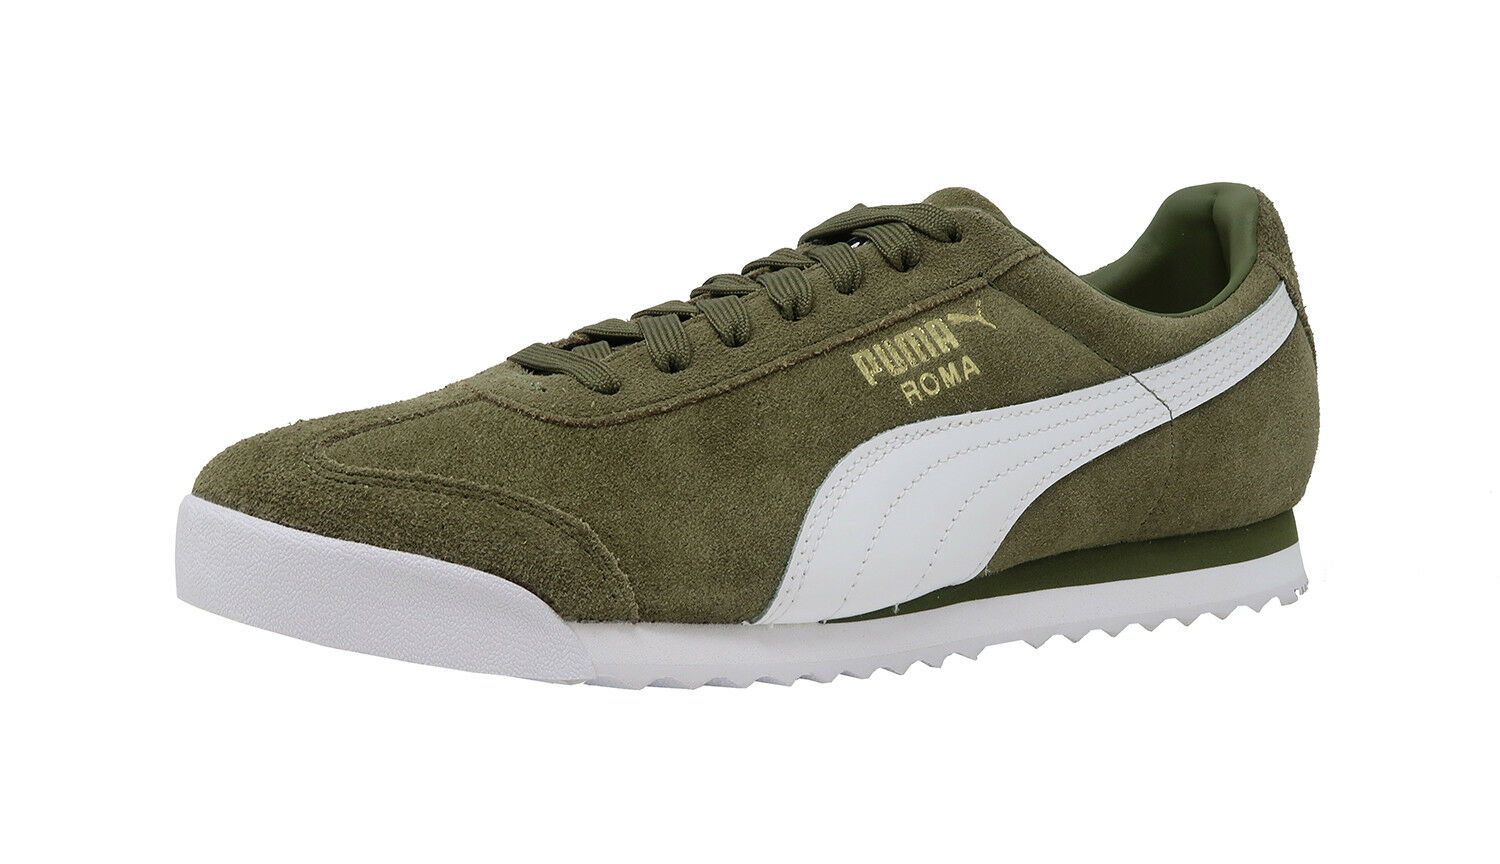 PUMA Roma Suede Leather Capulet Olive White Athletic Lace Up Sneakers Men Shoes